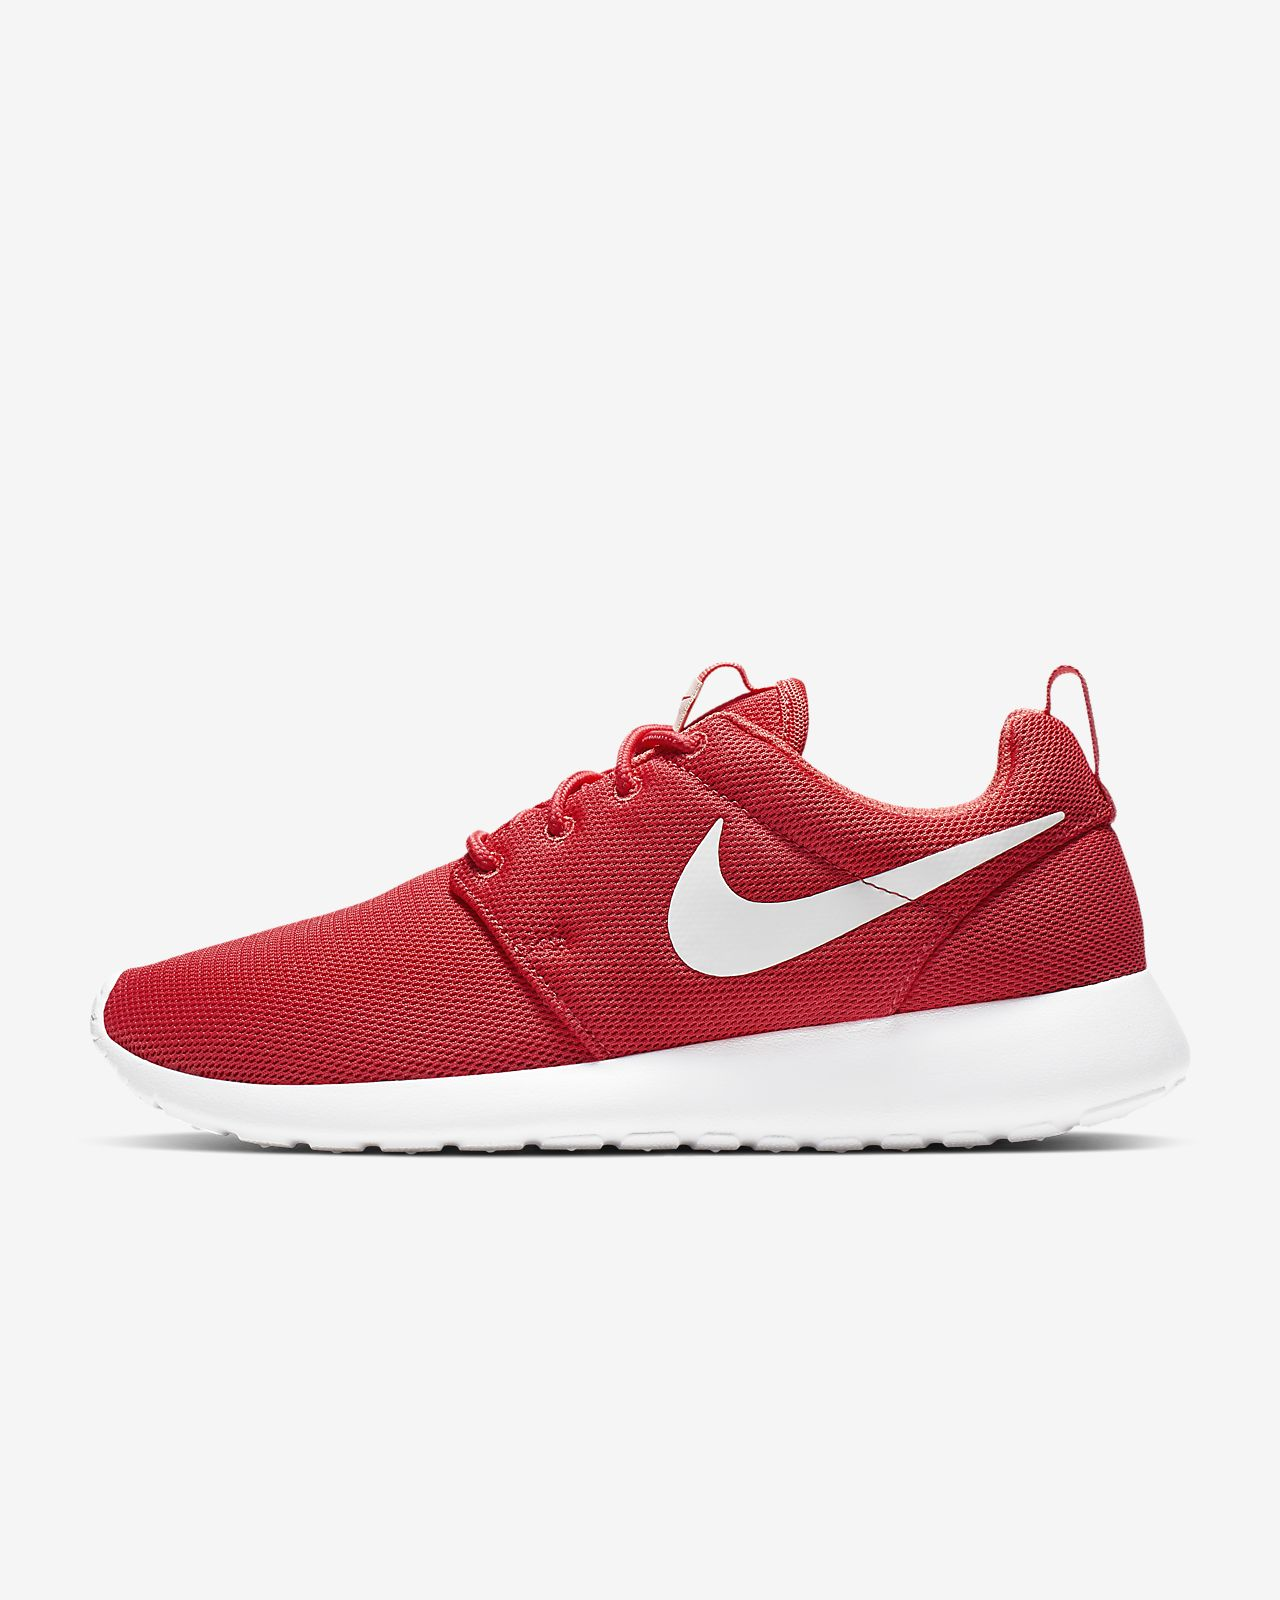 928f439a1fde Low Resolution Nike Roshe One Women s Shoe Nike Roshe One Women s Shoe